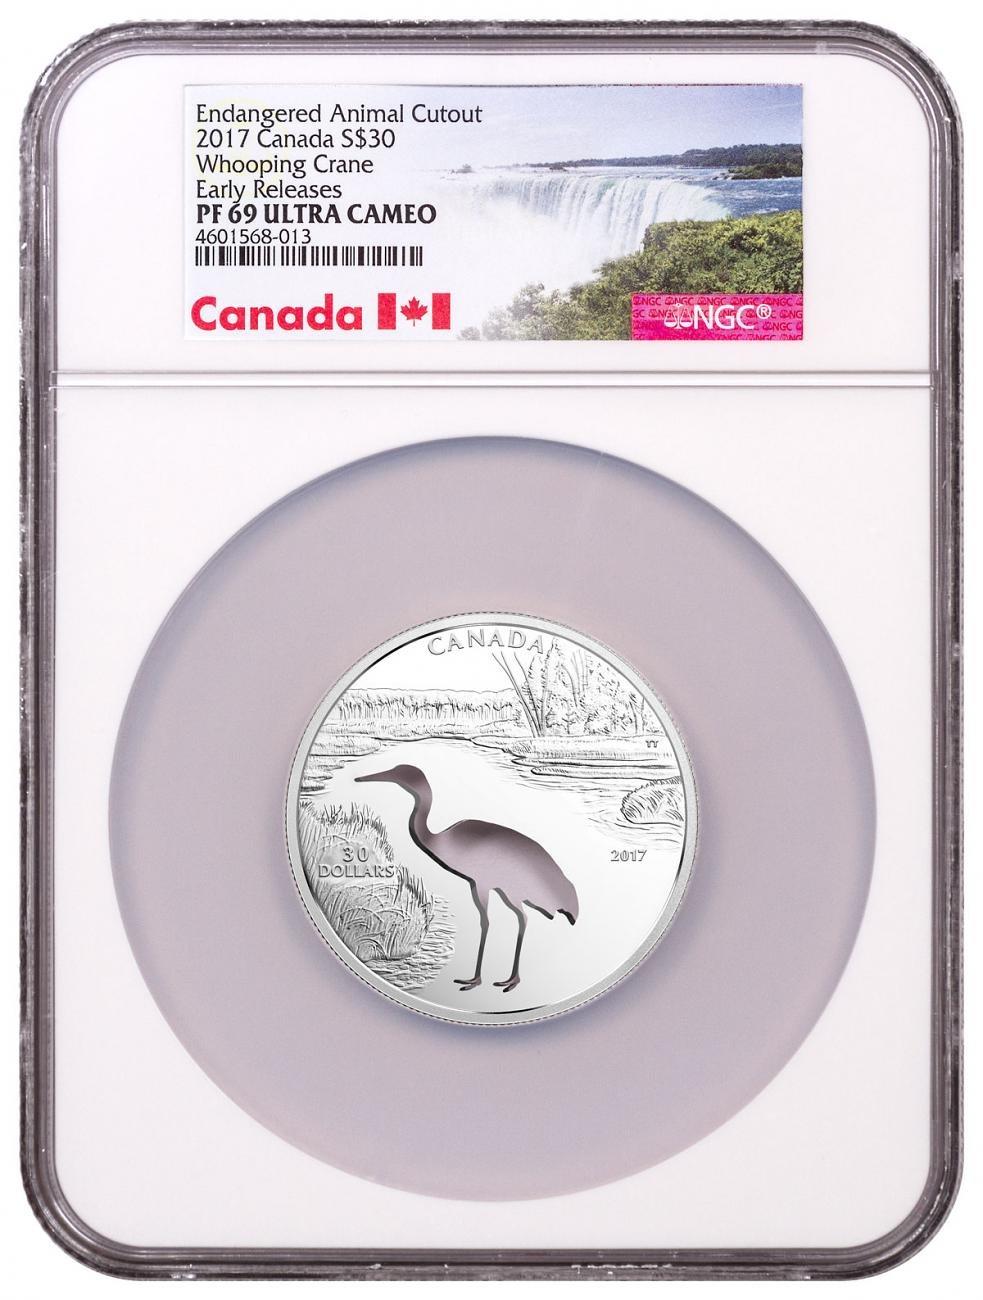 2017 Canada Endangered Animal Cutout - Whooping Crane Silver Proof $30 Coin NGC PF69 ER Exclusive Canada Label